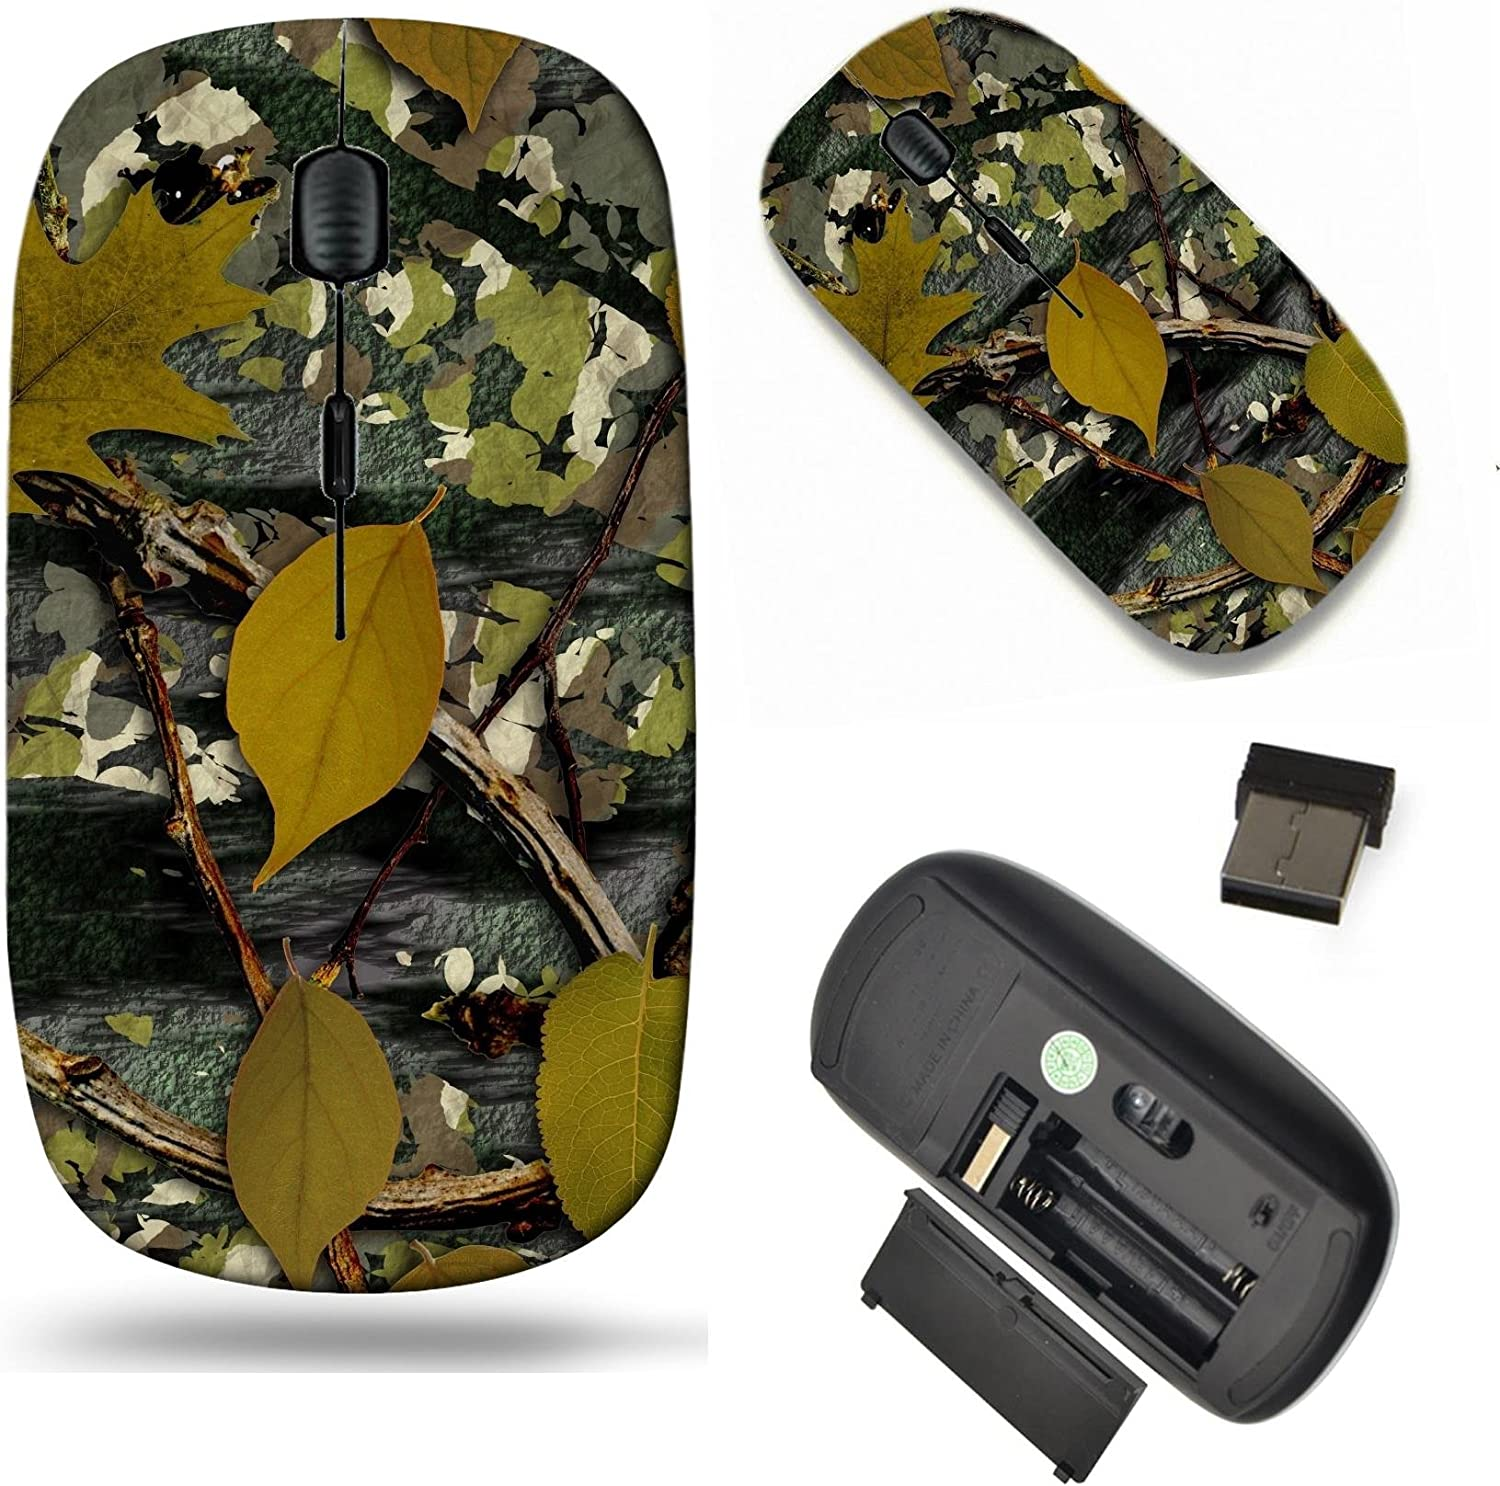 MSD Wireless Mouse Travel 2.4G Wireless Mice with USB Receiver, Noiseless and Silent Click with 1000 DPI for notebook, pc, laptop, computer, mac book design: 12826589 Natural Camouflage Seamless Textu